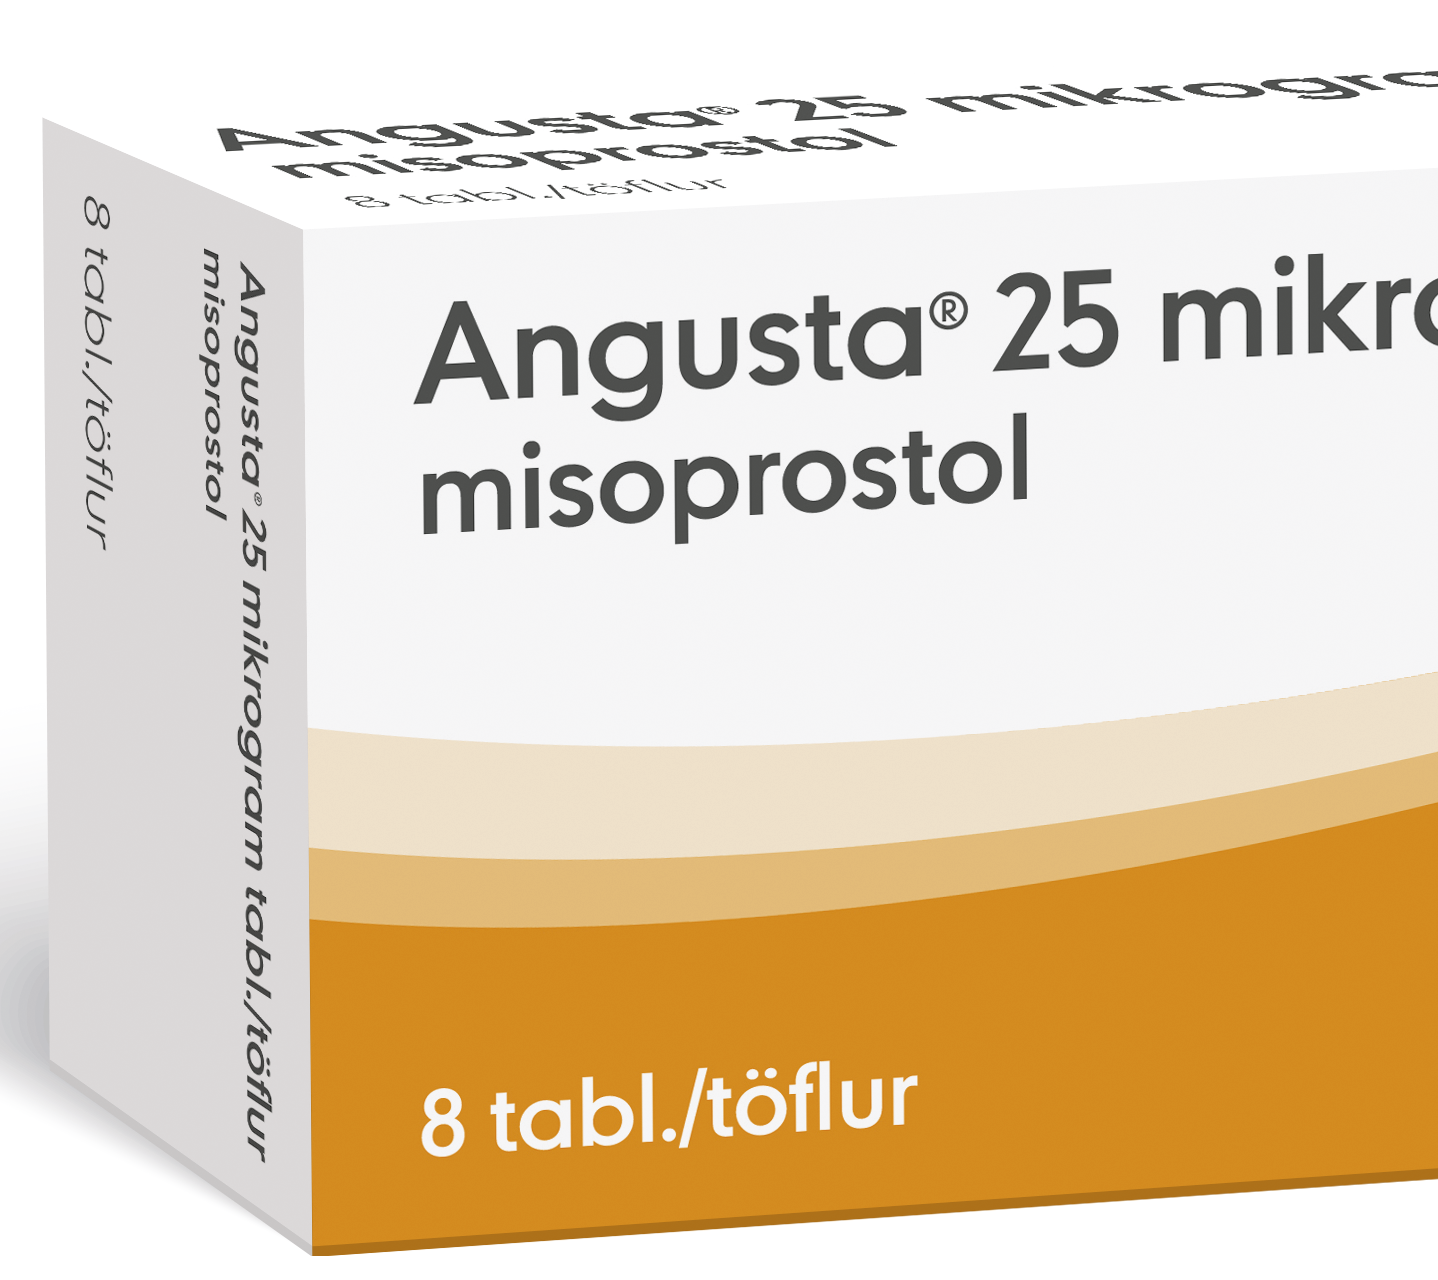 Home Misoprostol Gastric Health Tablet Green World Angusta Of 25 G For Oral Induction Labour Approved Marketing In The Nordic Countries